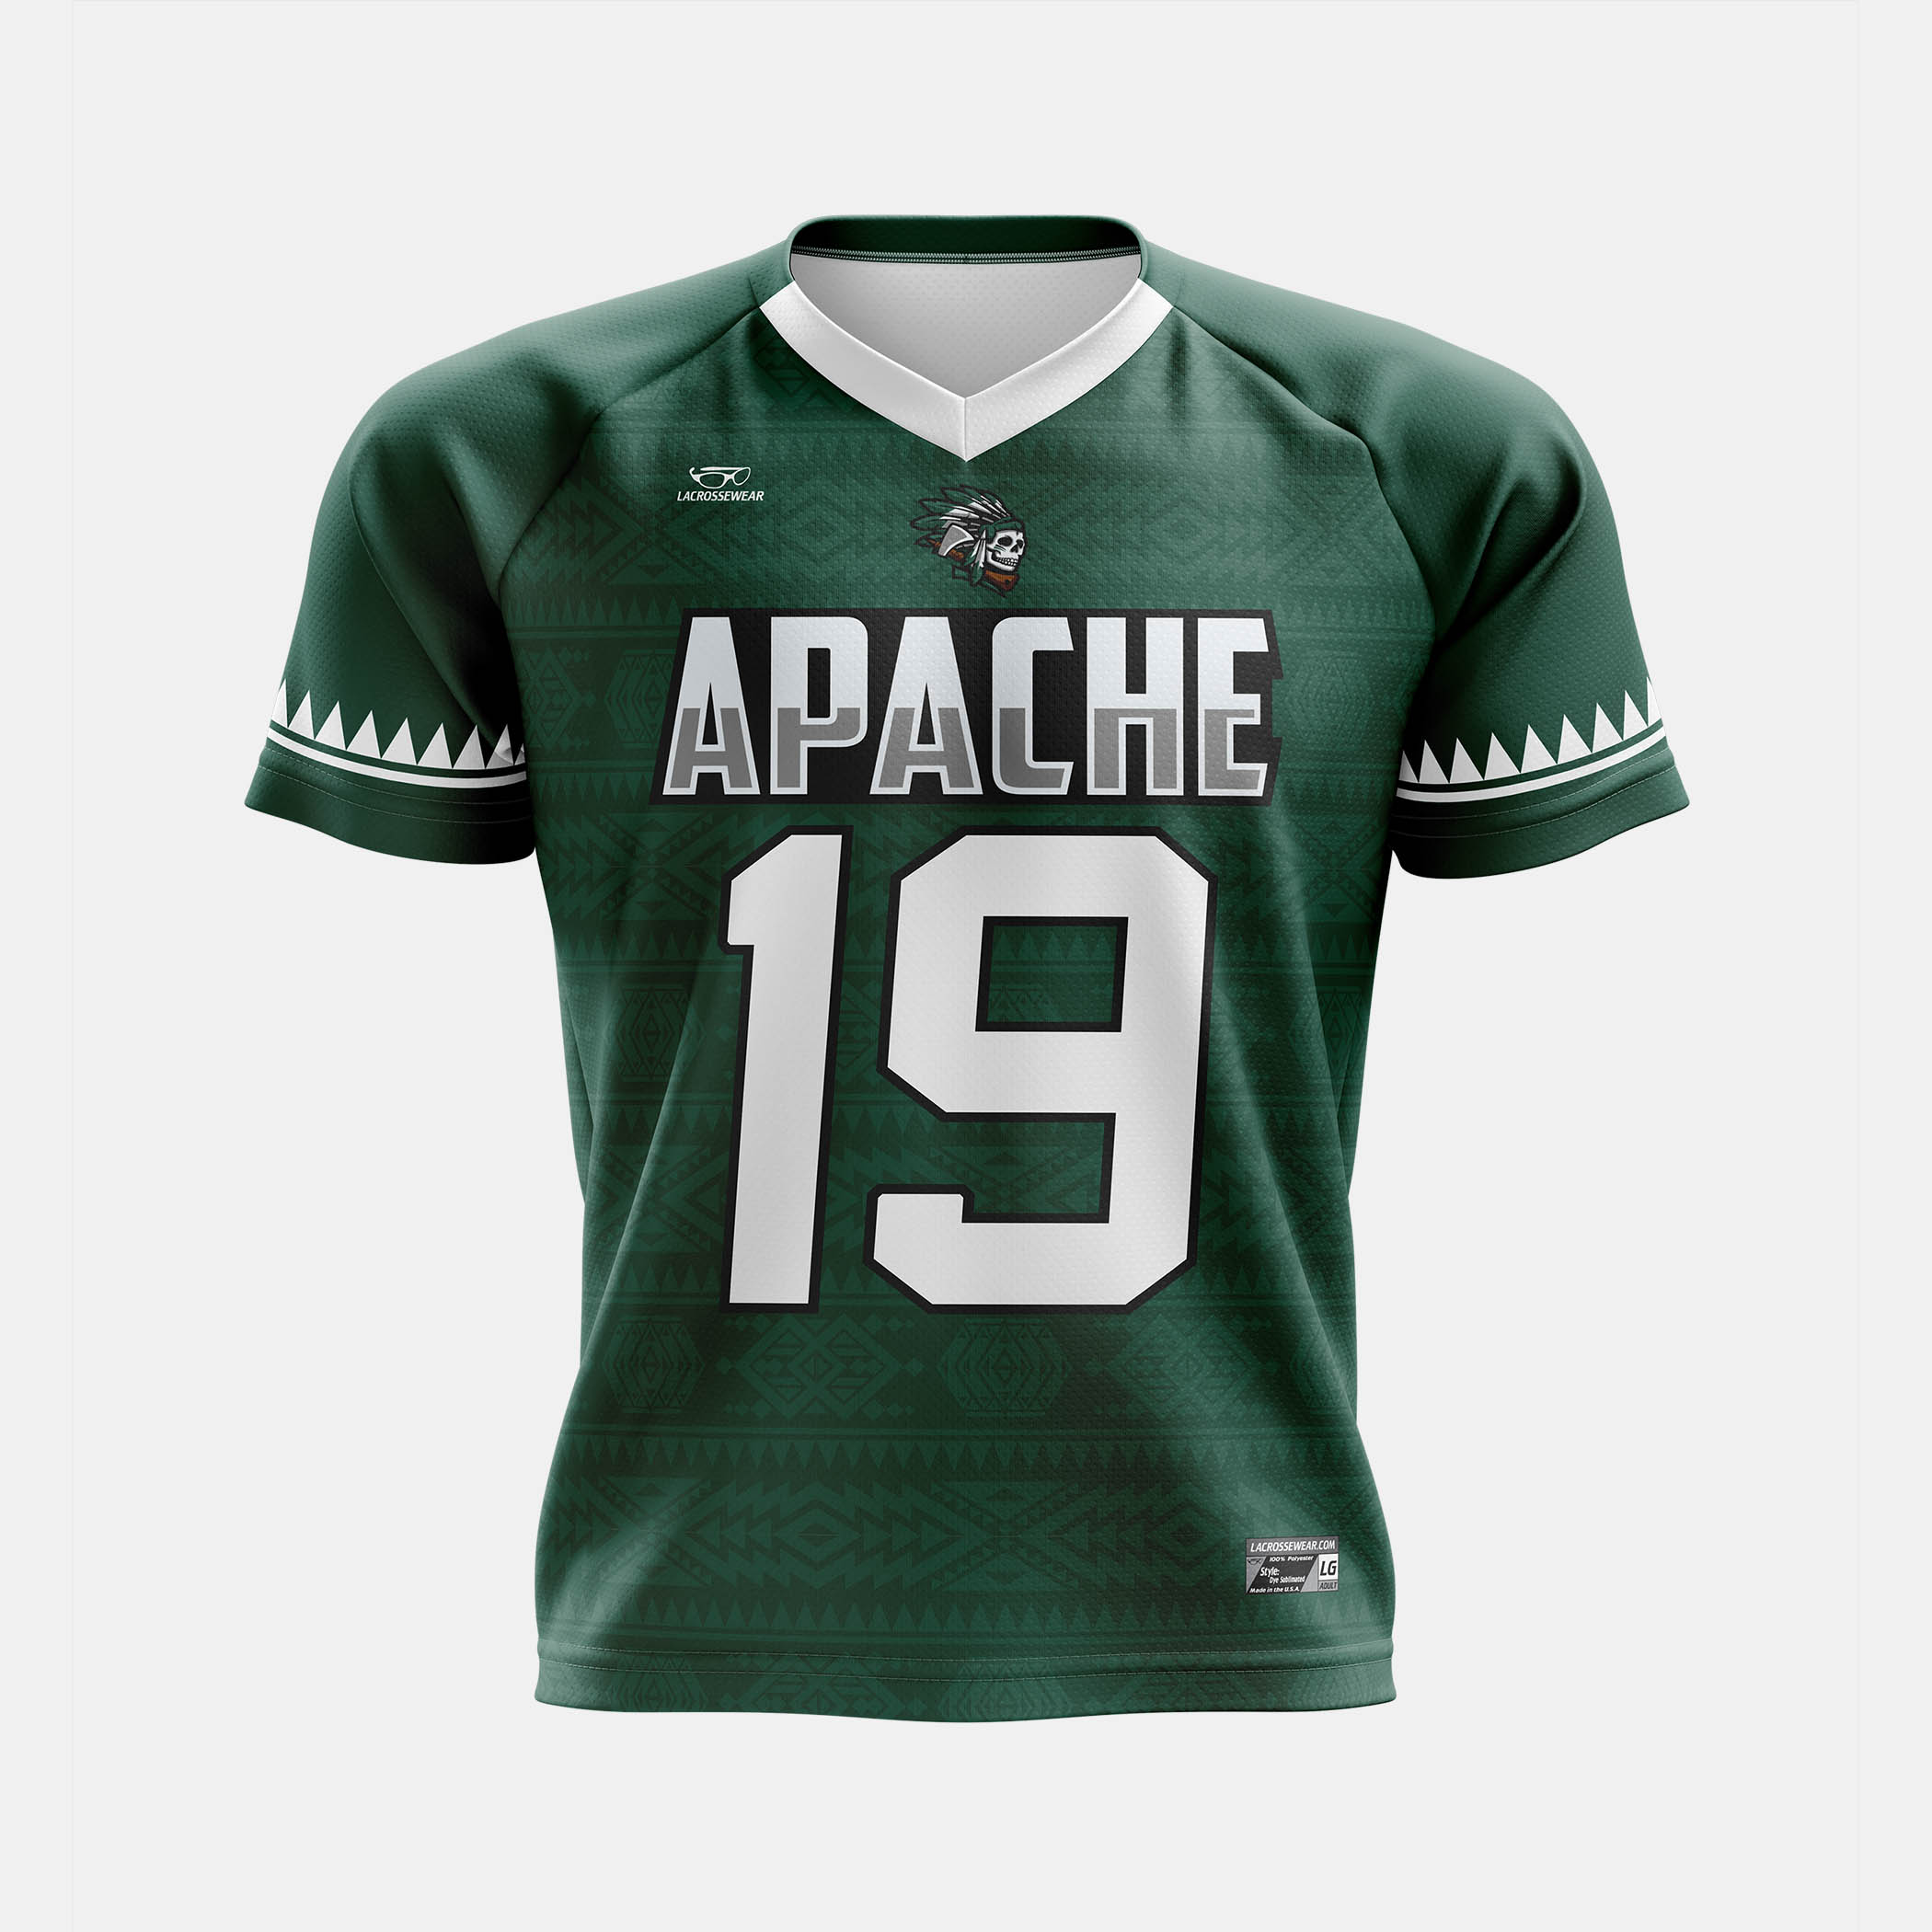 Apache Jersey Mock Front View